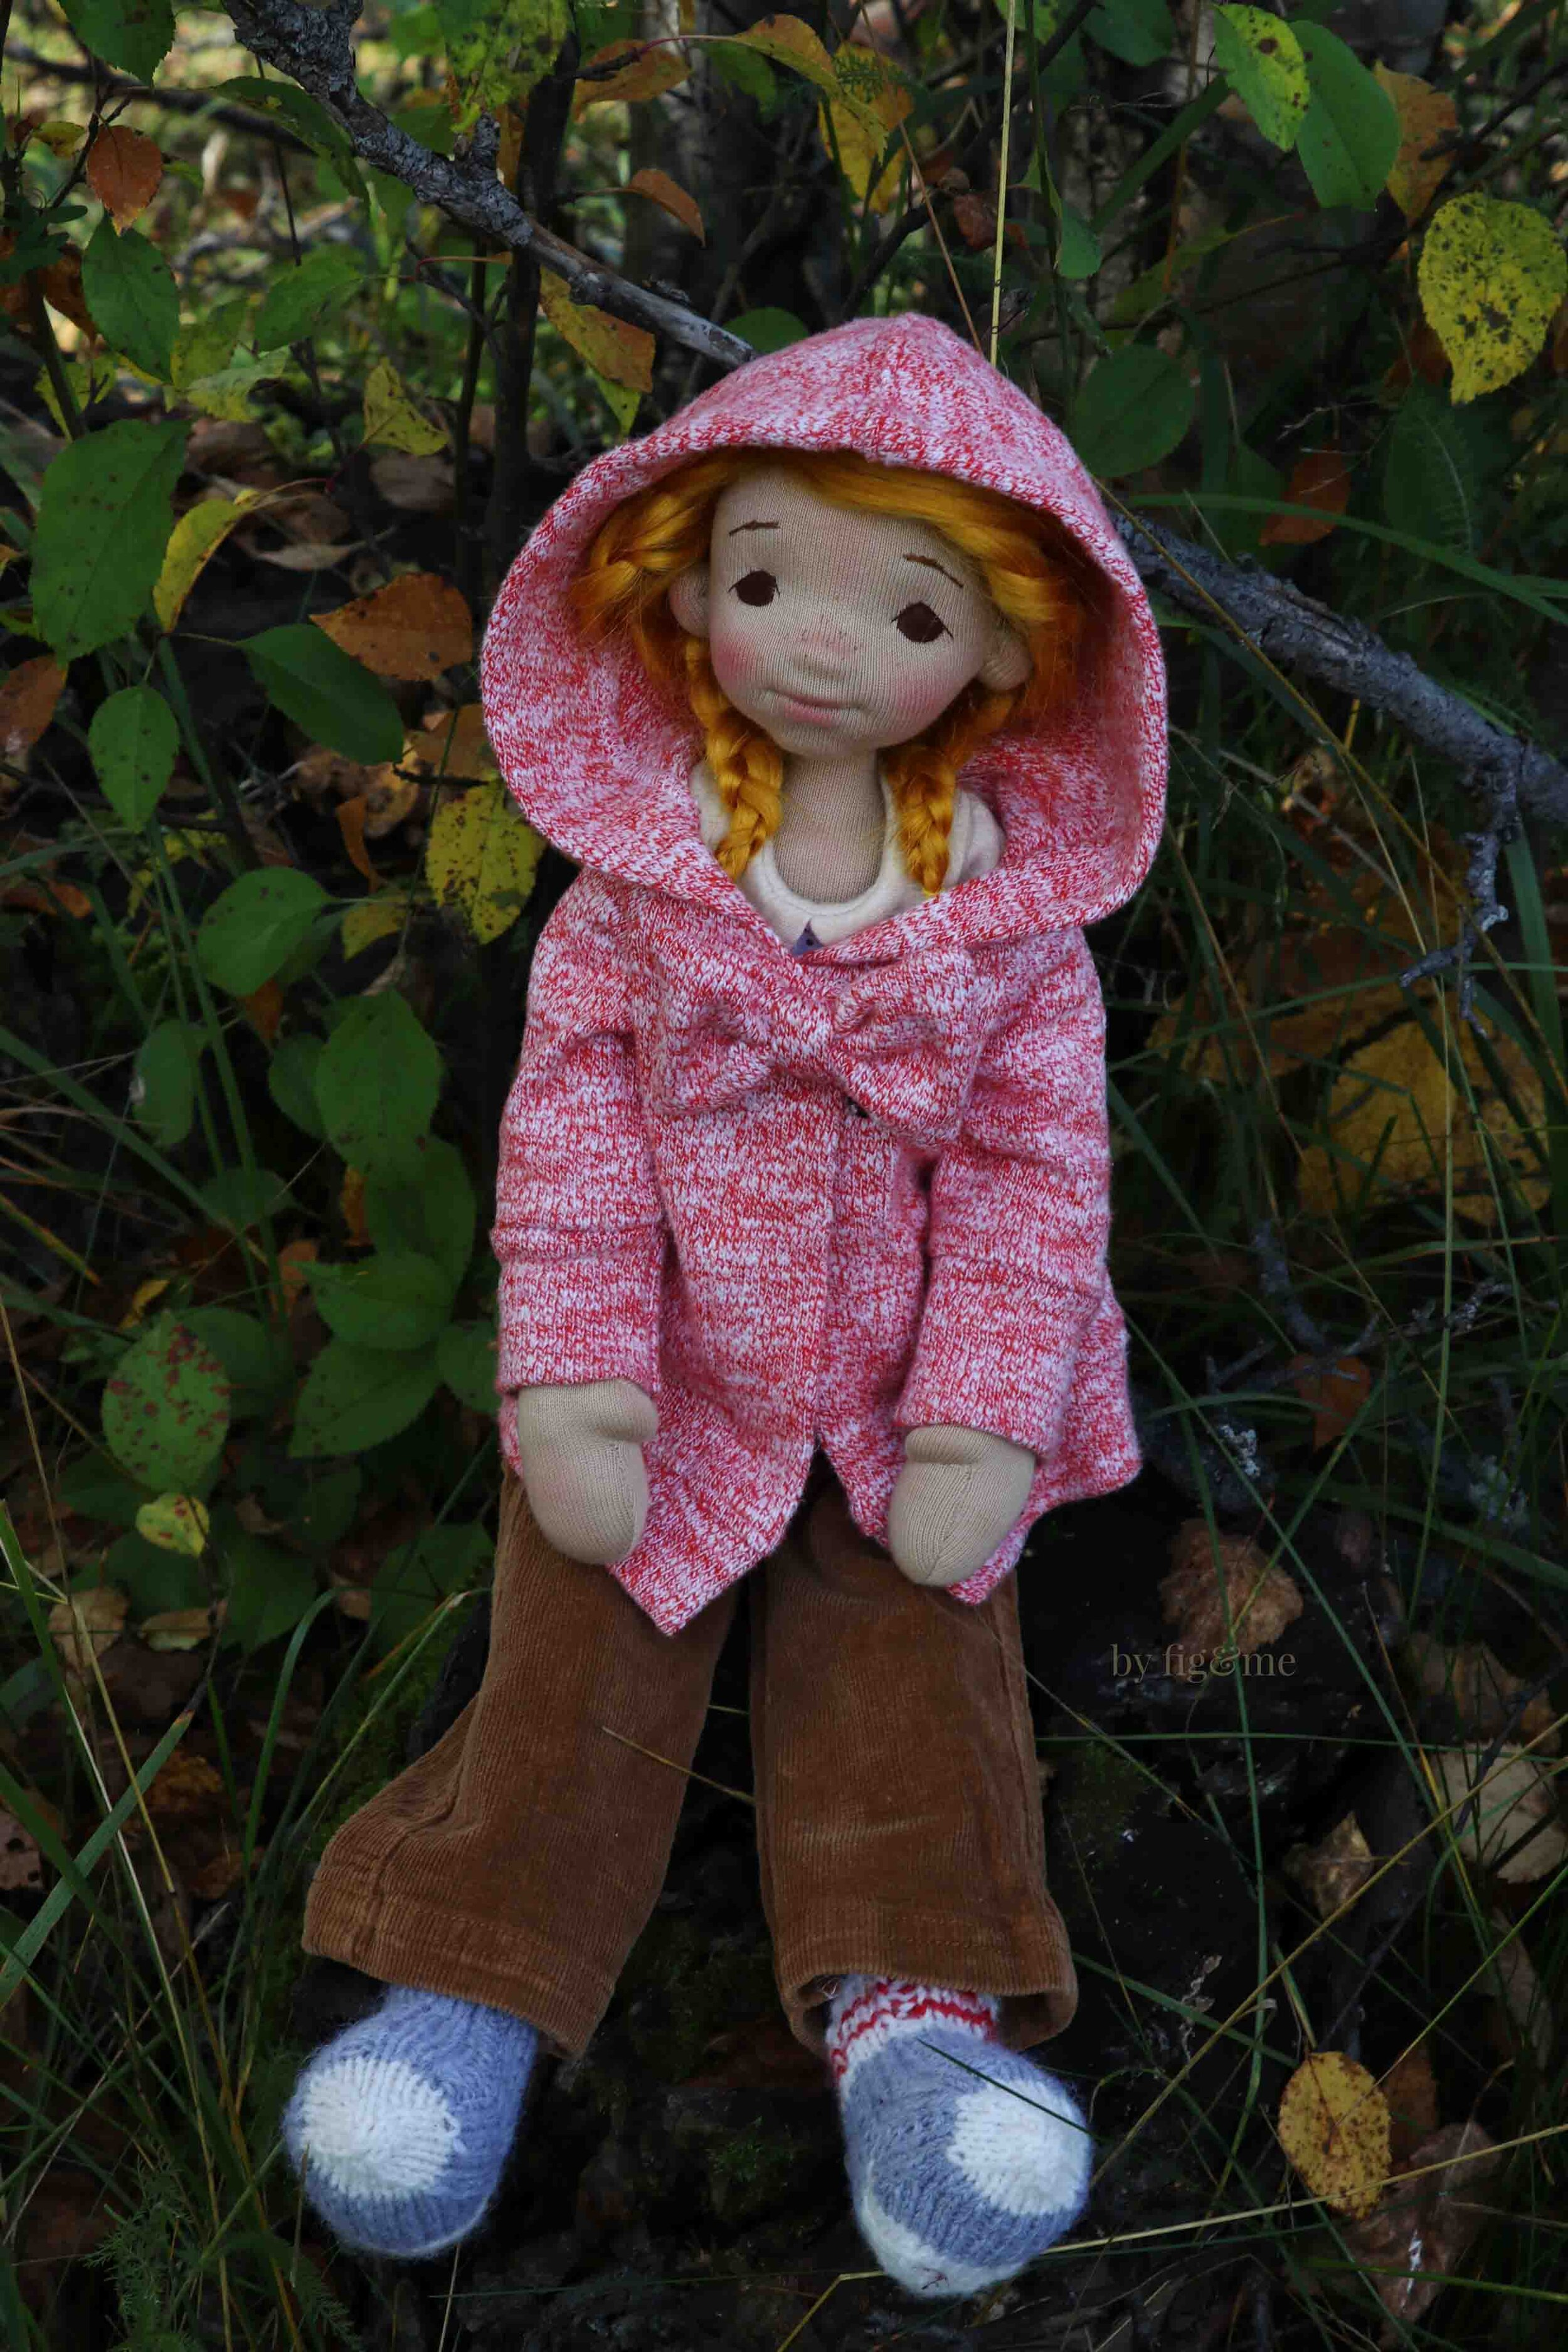 Winona in her fall clothing, by fig and me